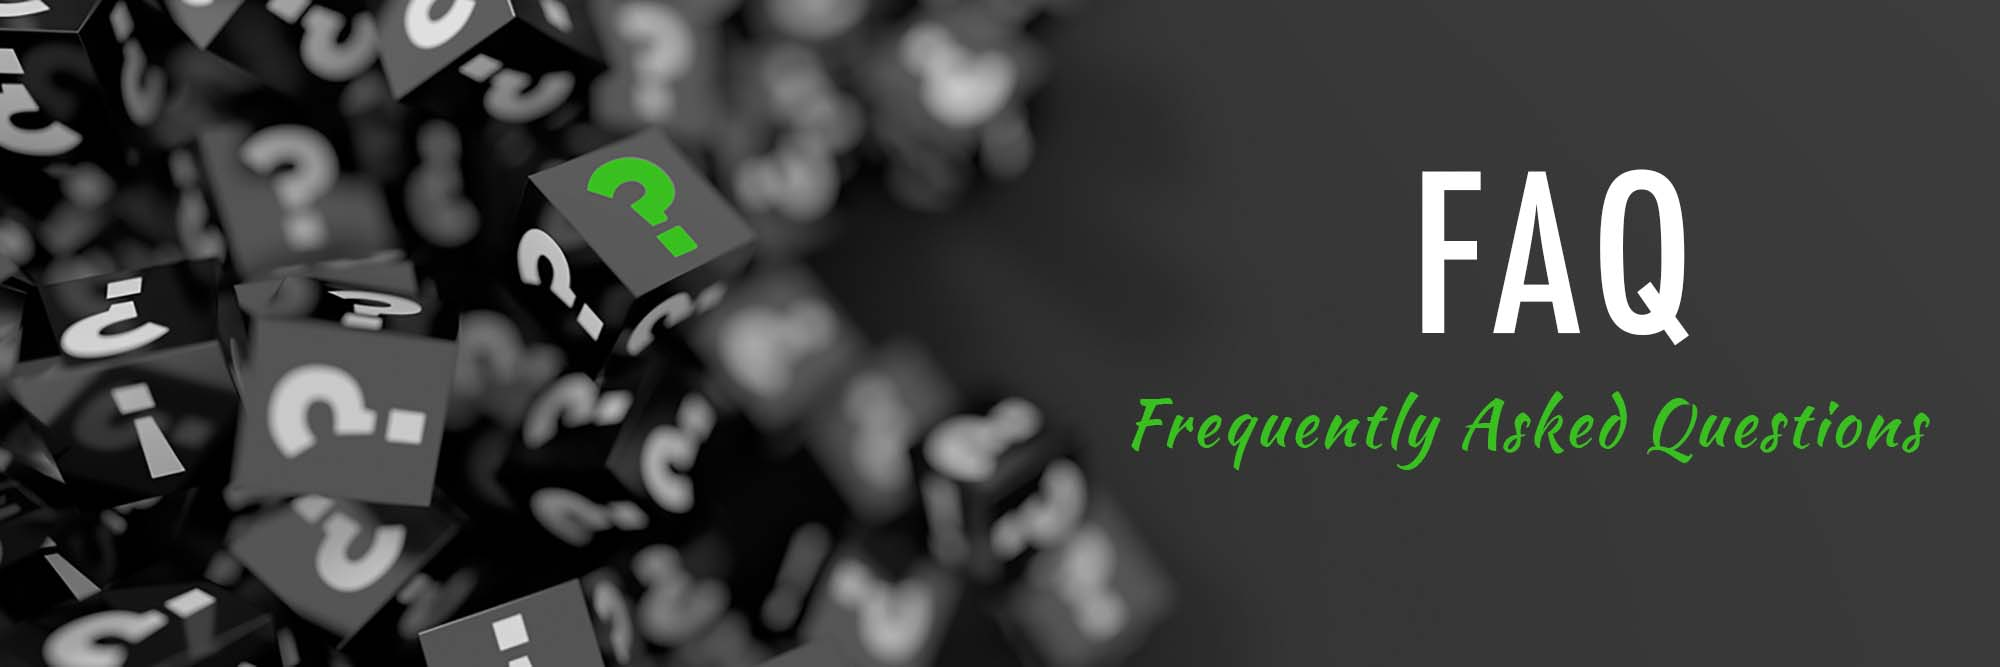 frequently asked questions banner 2000 x 667